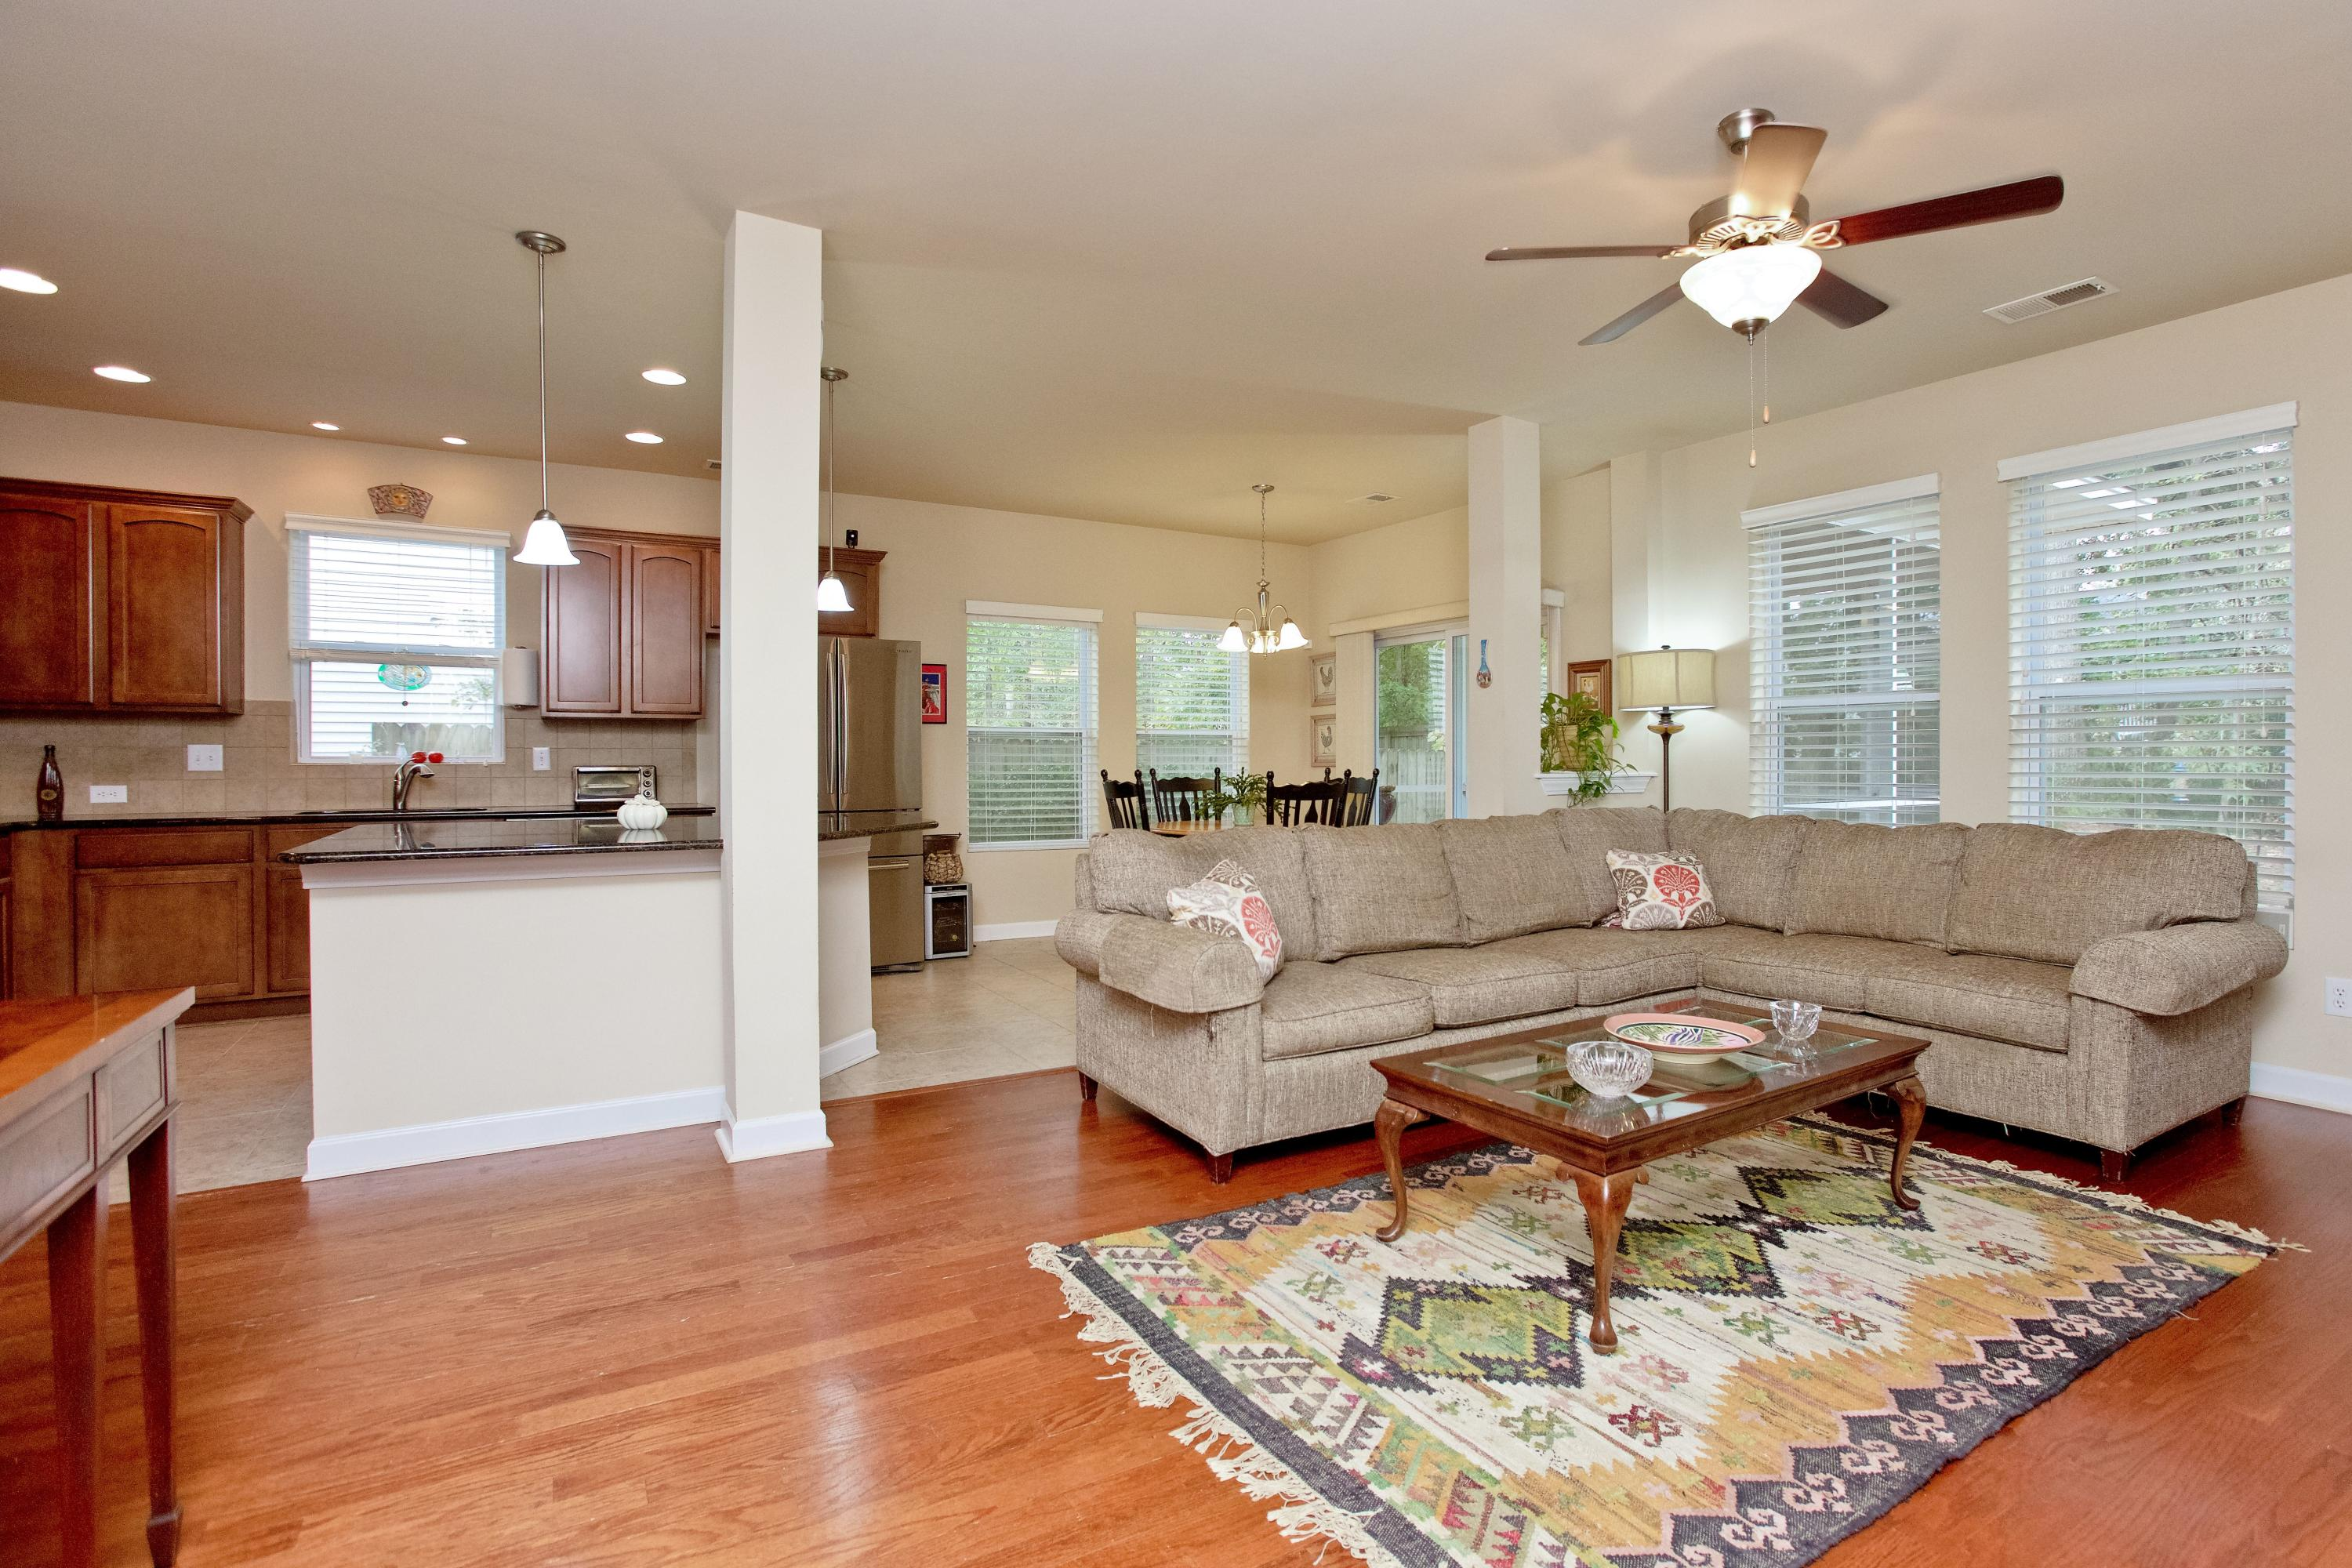 Appian Way Homes For Sale - 8473 Athens, North Charleston, SC - 8